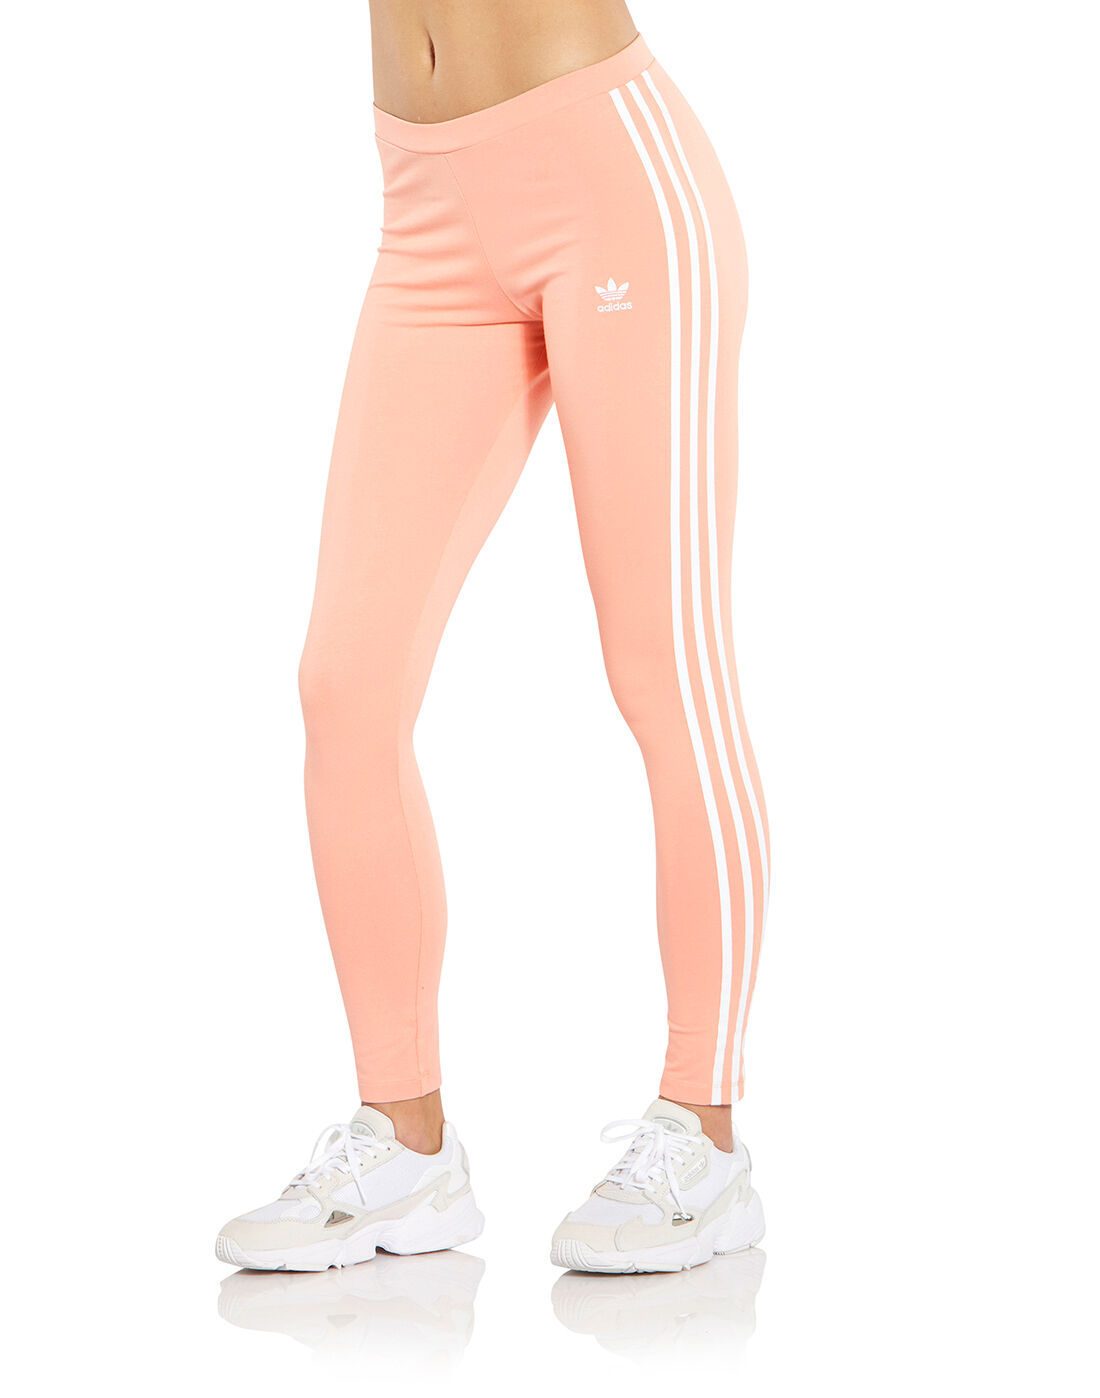 adidas Originals Womens 3 Stripes Leggings